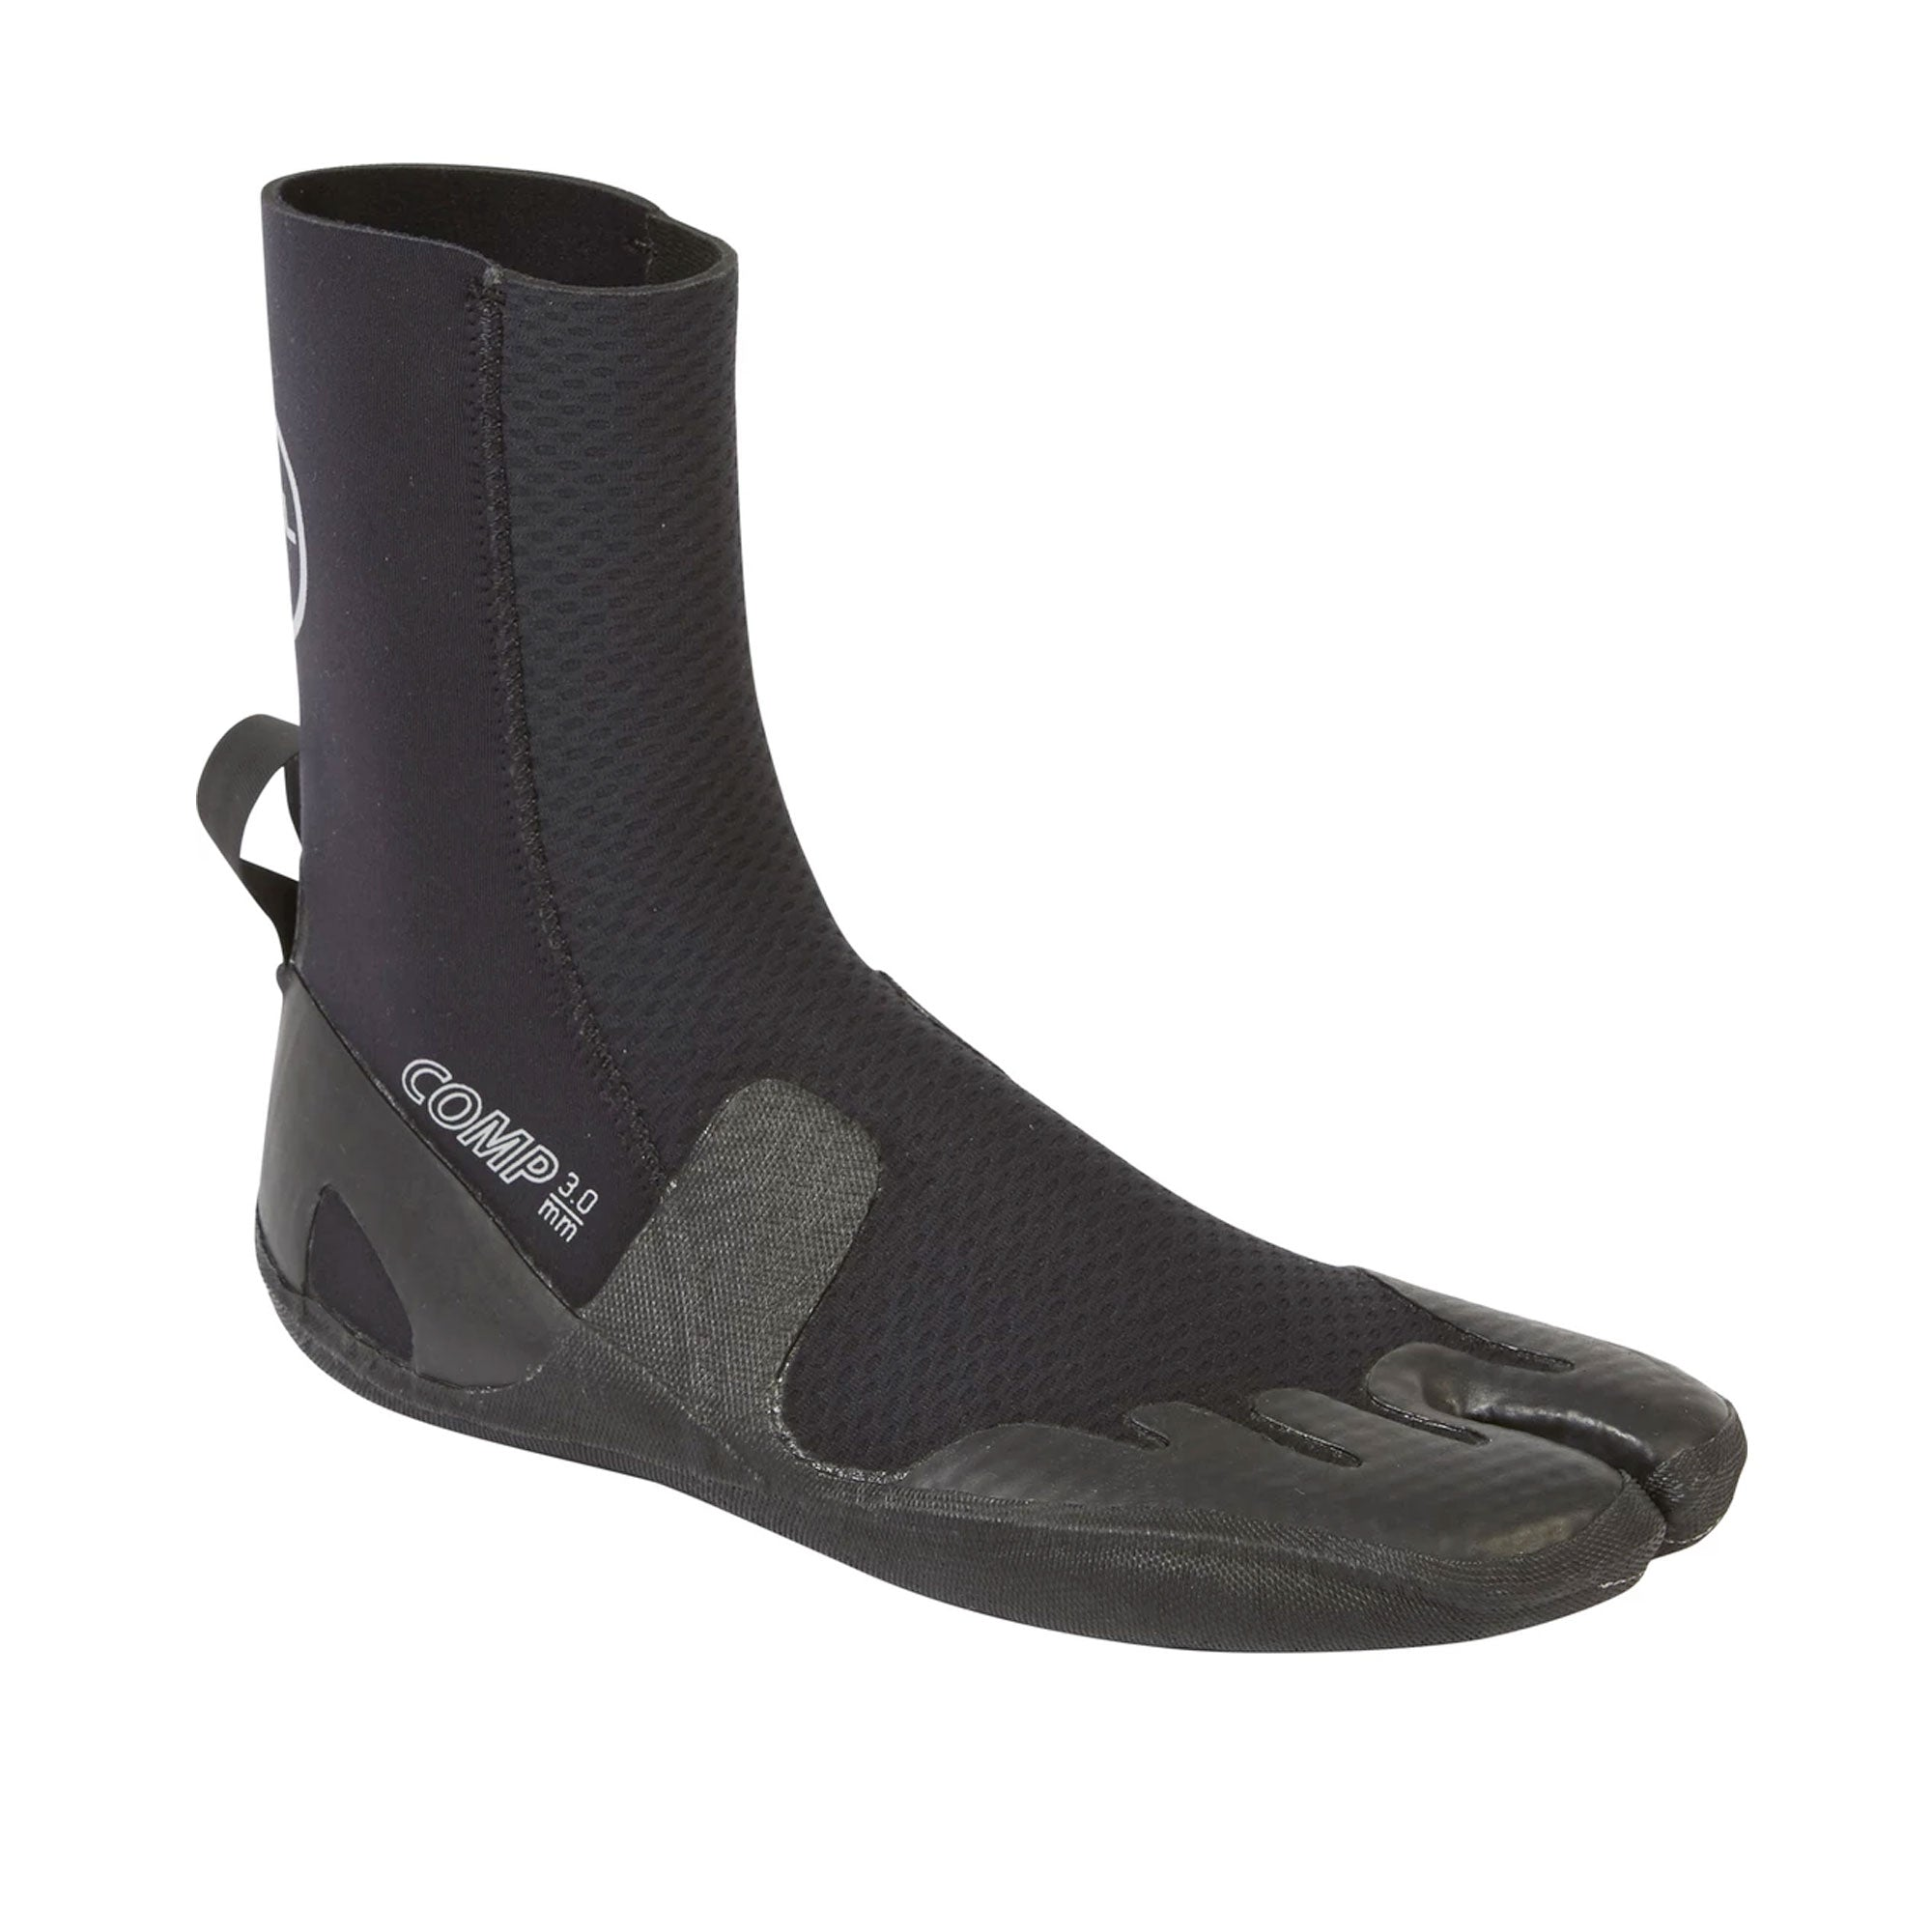 Xcel Comp 3mm Split Toe Men's Wetsuit Booties